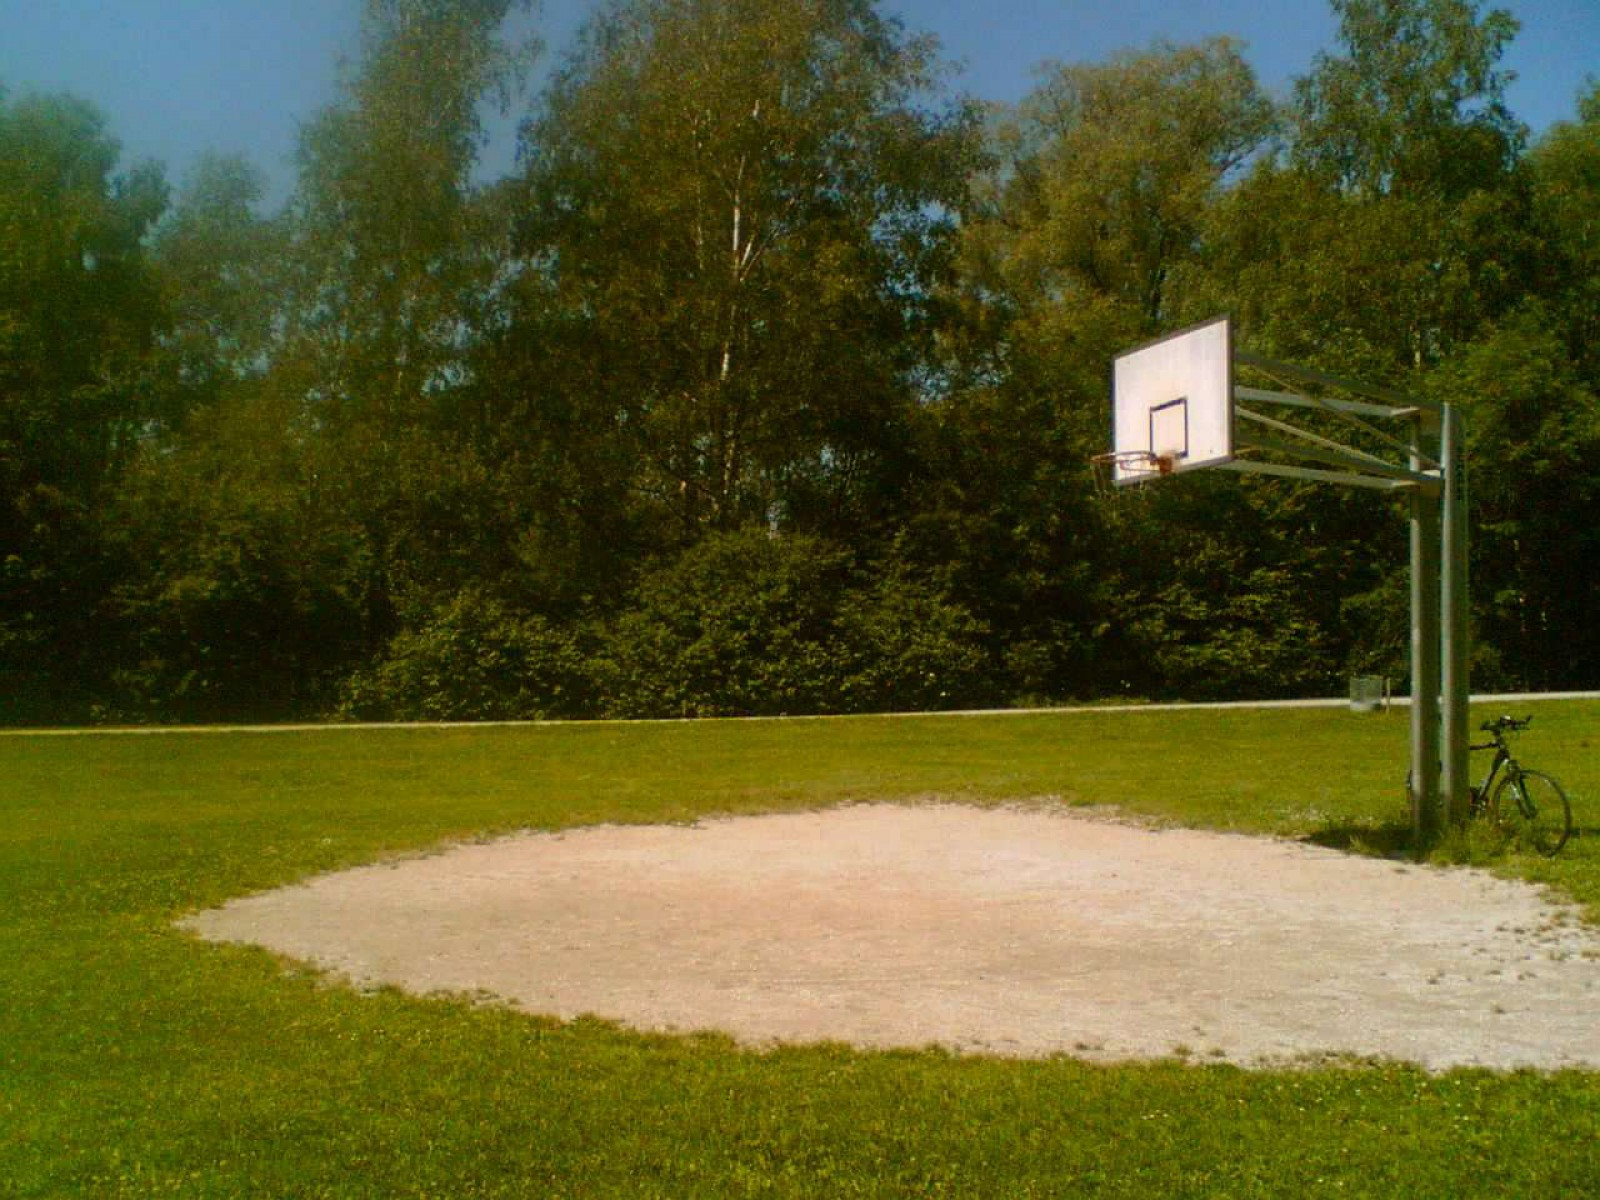 Sand Court am Lech, Augsburg, Germany